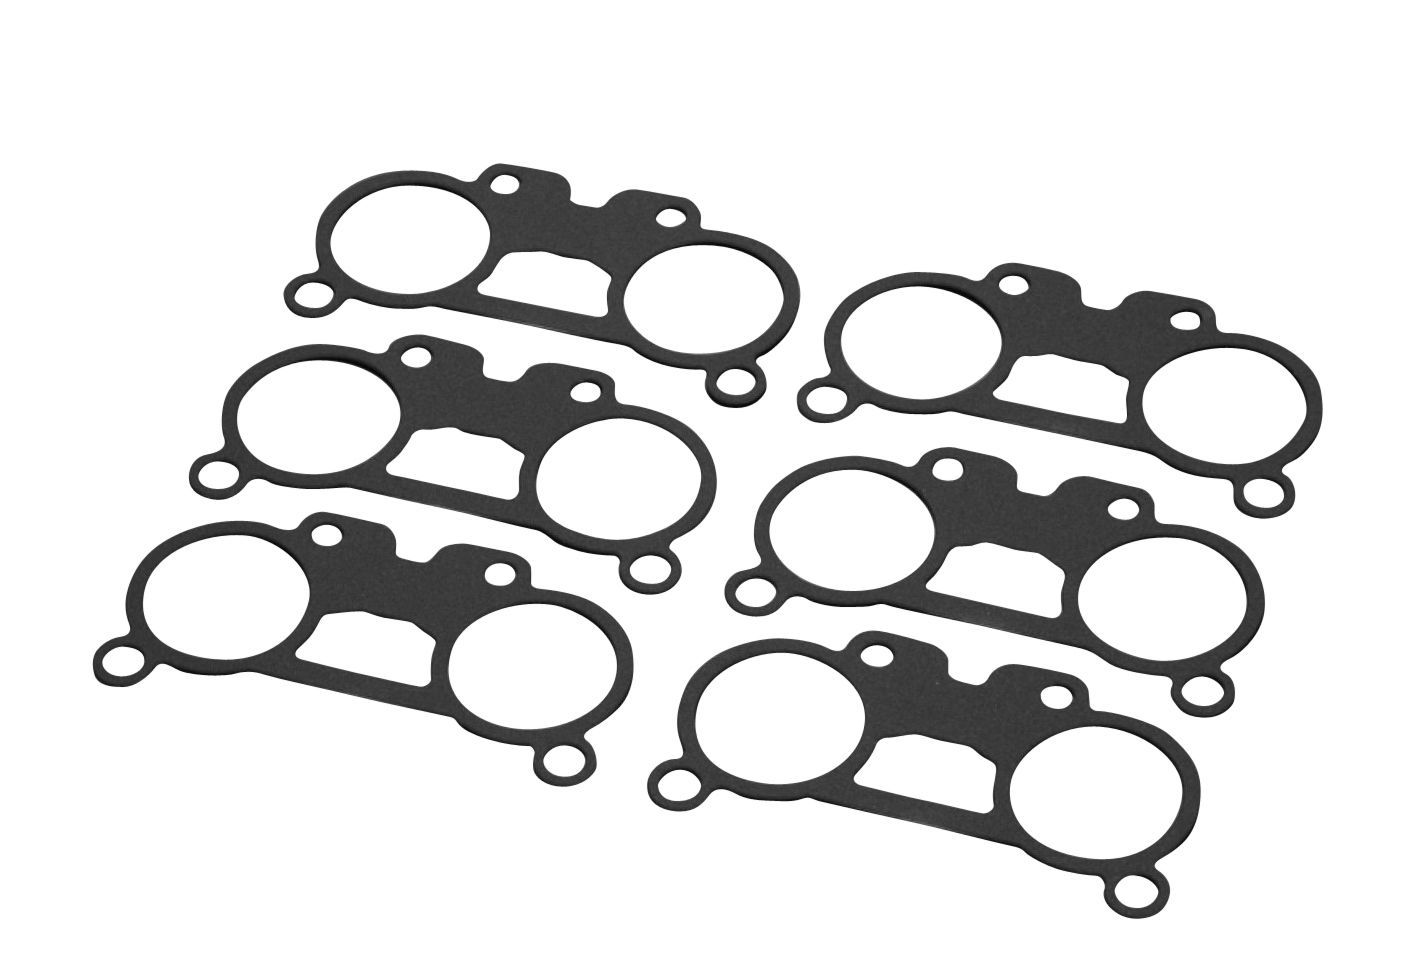 HKS Intake Throttle Body Gasket - Nissan R32, R33, R34 RB26DETT